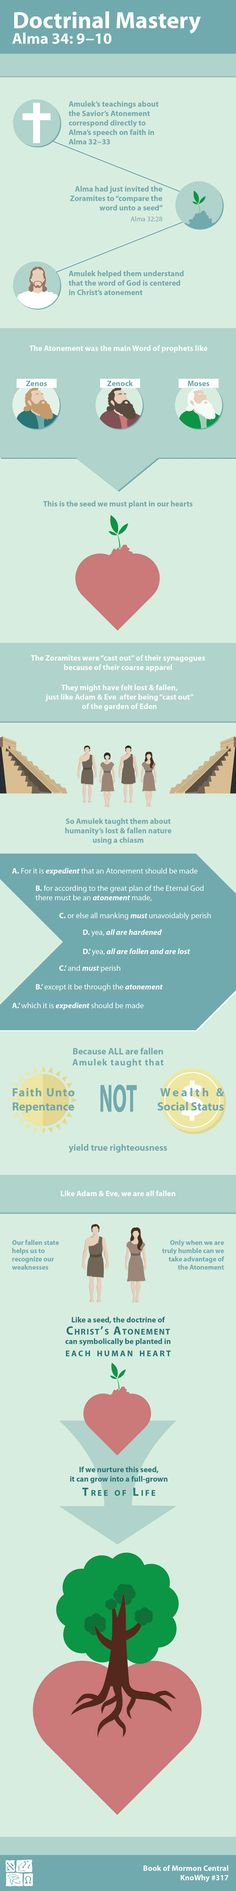 Doctrinal Mastery Alma 34:9–10 Infographic by Book of Mormon Central